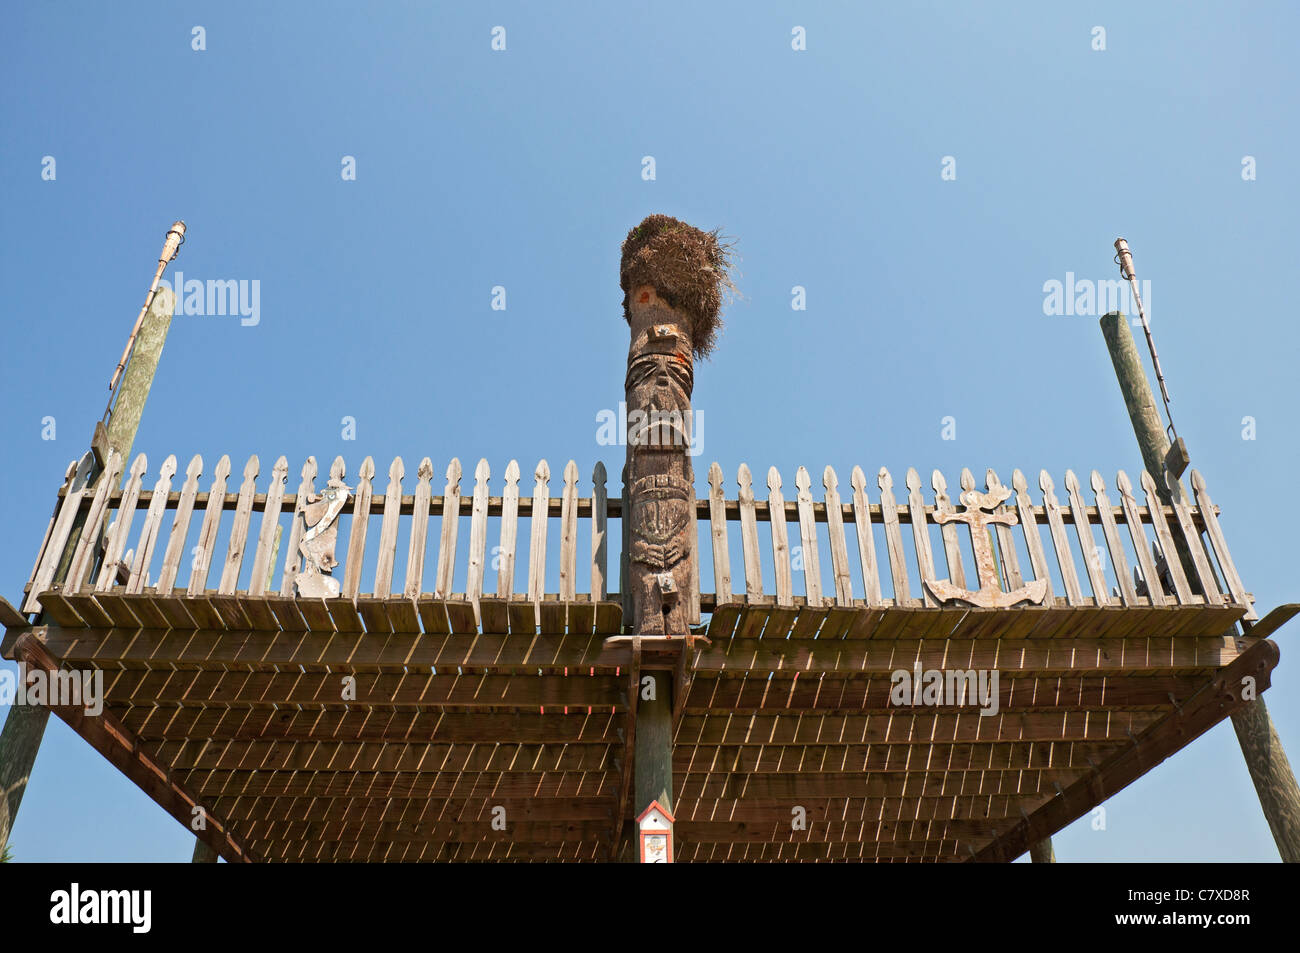 Raised wooden deck with totem decoration in funky little Gulf coastal town of Horseshoe Beach Florida. - Stock Image